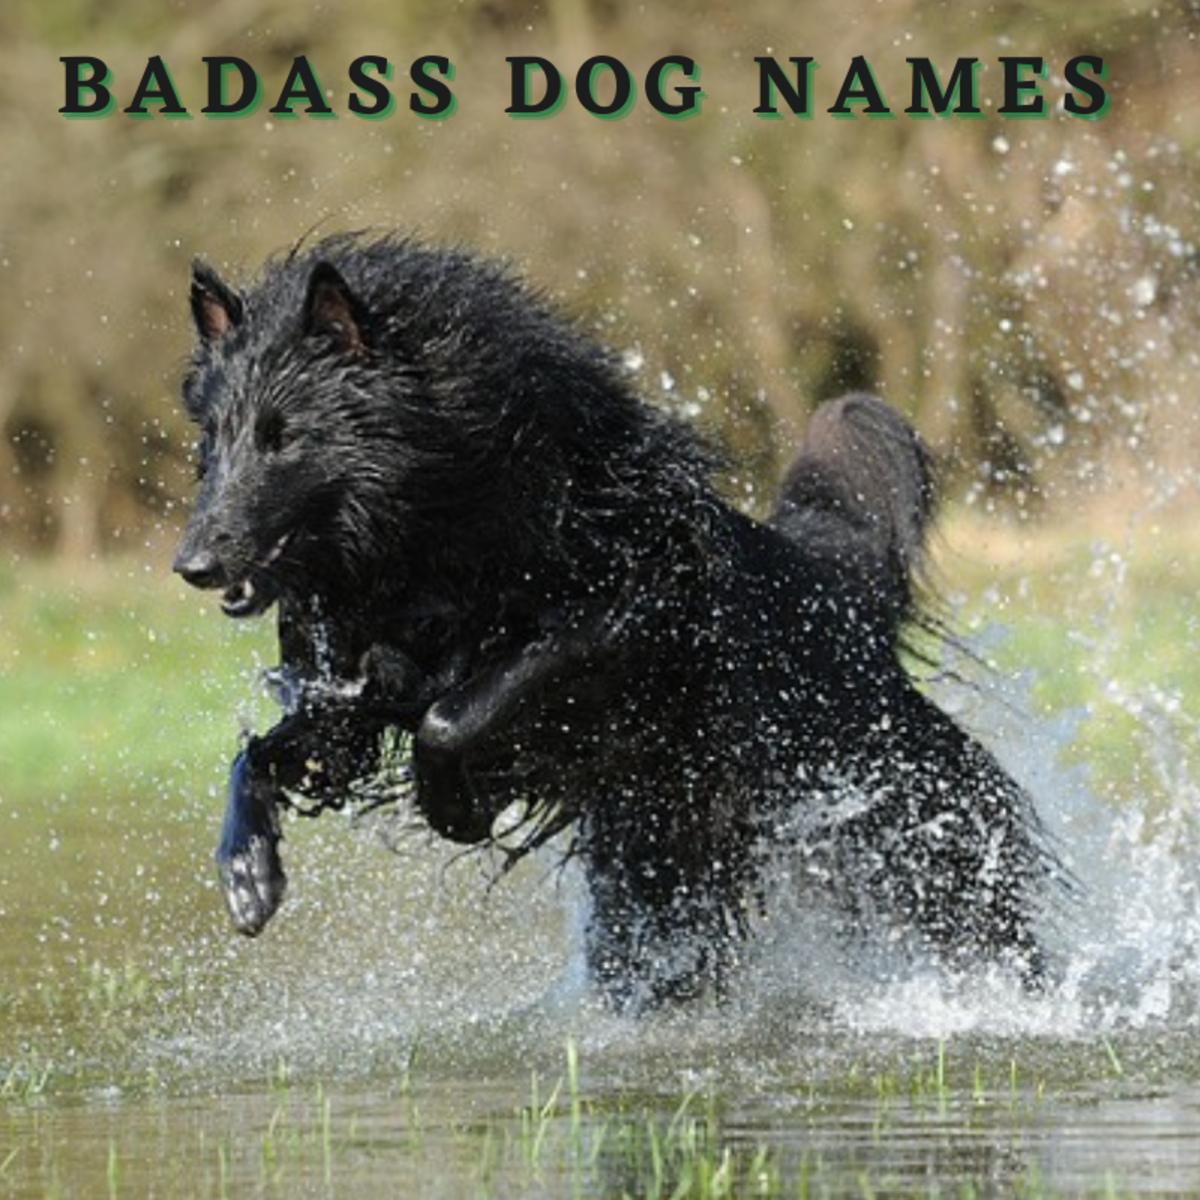 300+ Badass Dog Names (With Definitions) for Your Pup